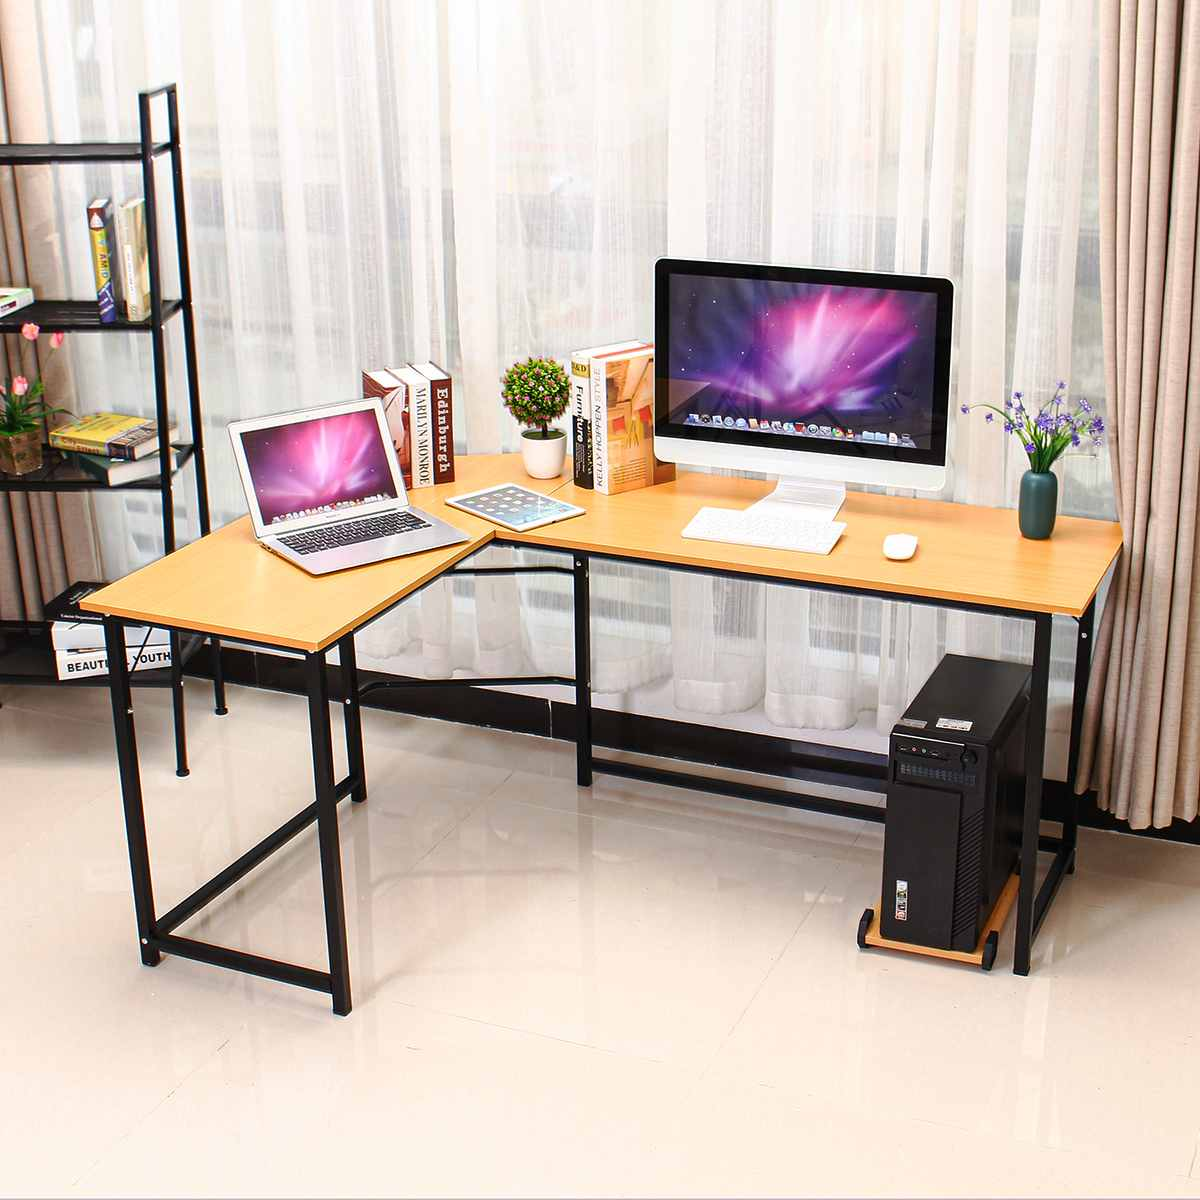 Wooden Office Computer Writing Desk Home Gaming Pc Furnitur L Shape Corner Study Computer Table Laptop Desk Laptop Table Buy At The Price Of 78 25 In Aliexpress Com Imall Com